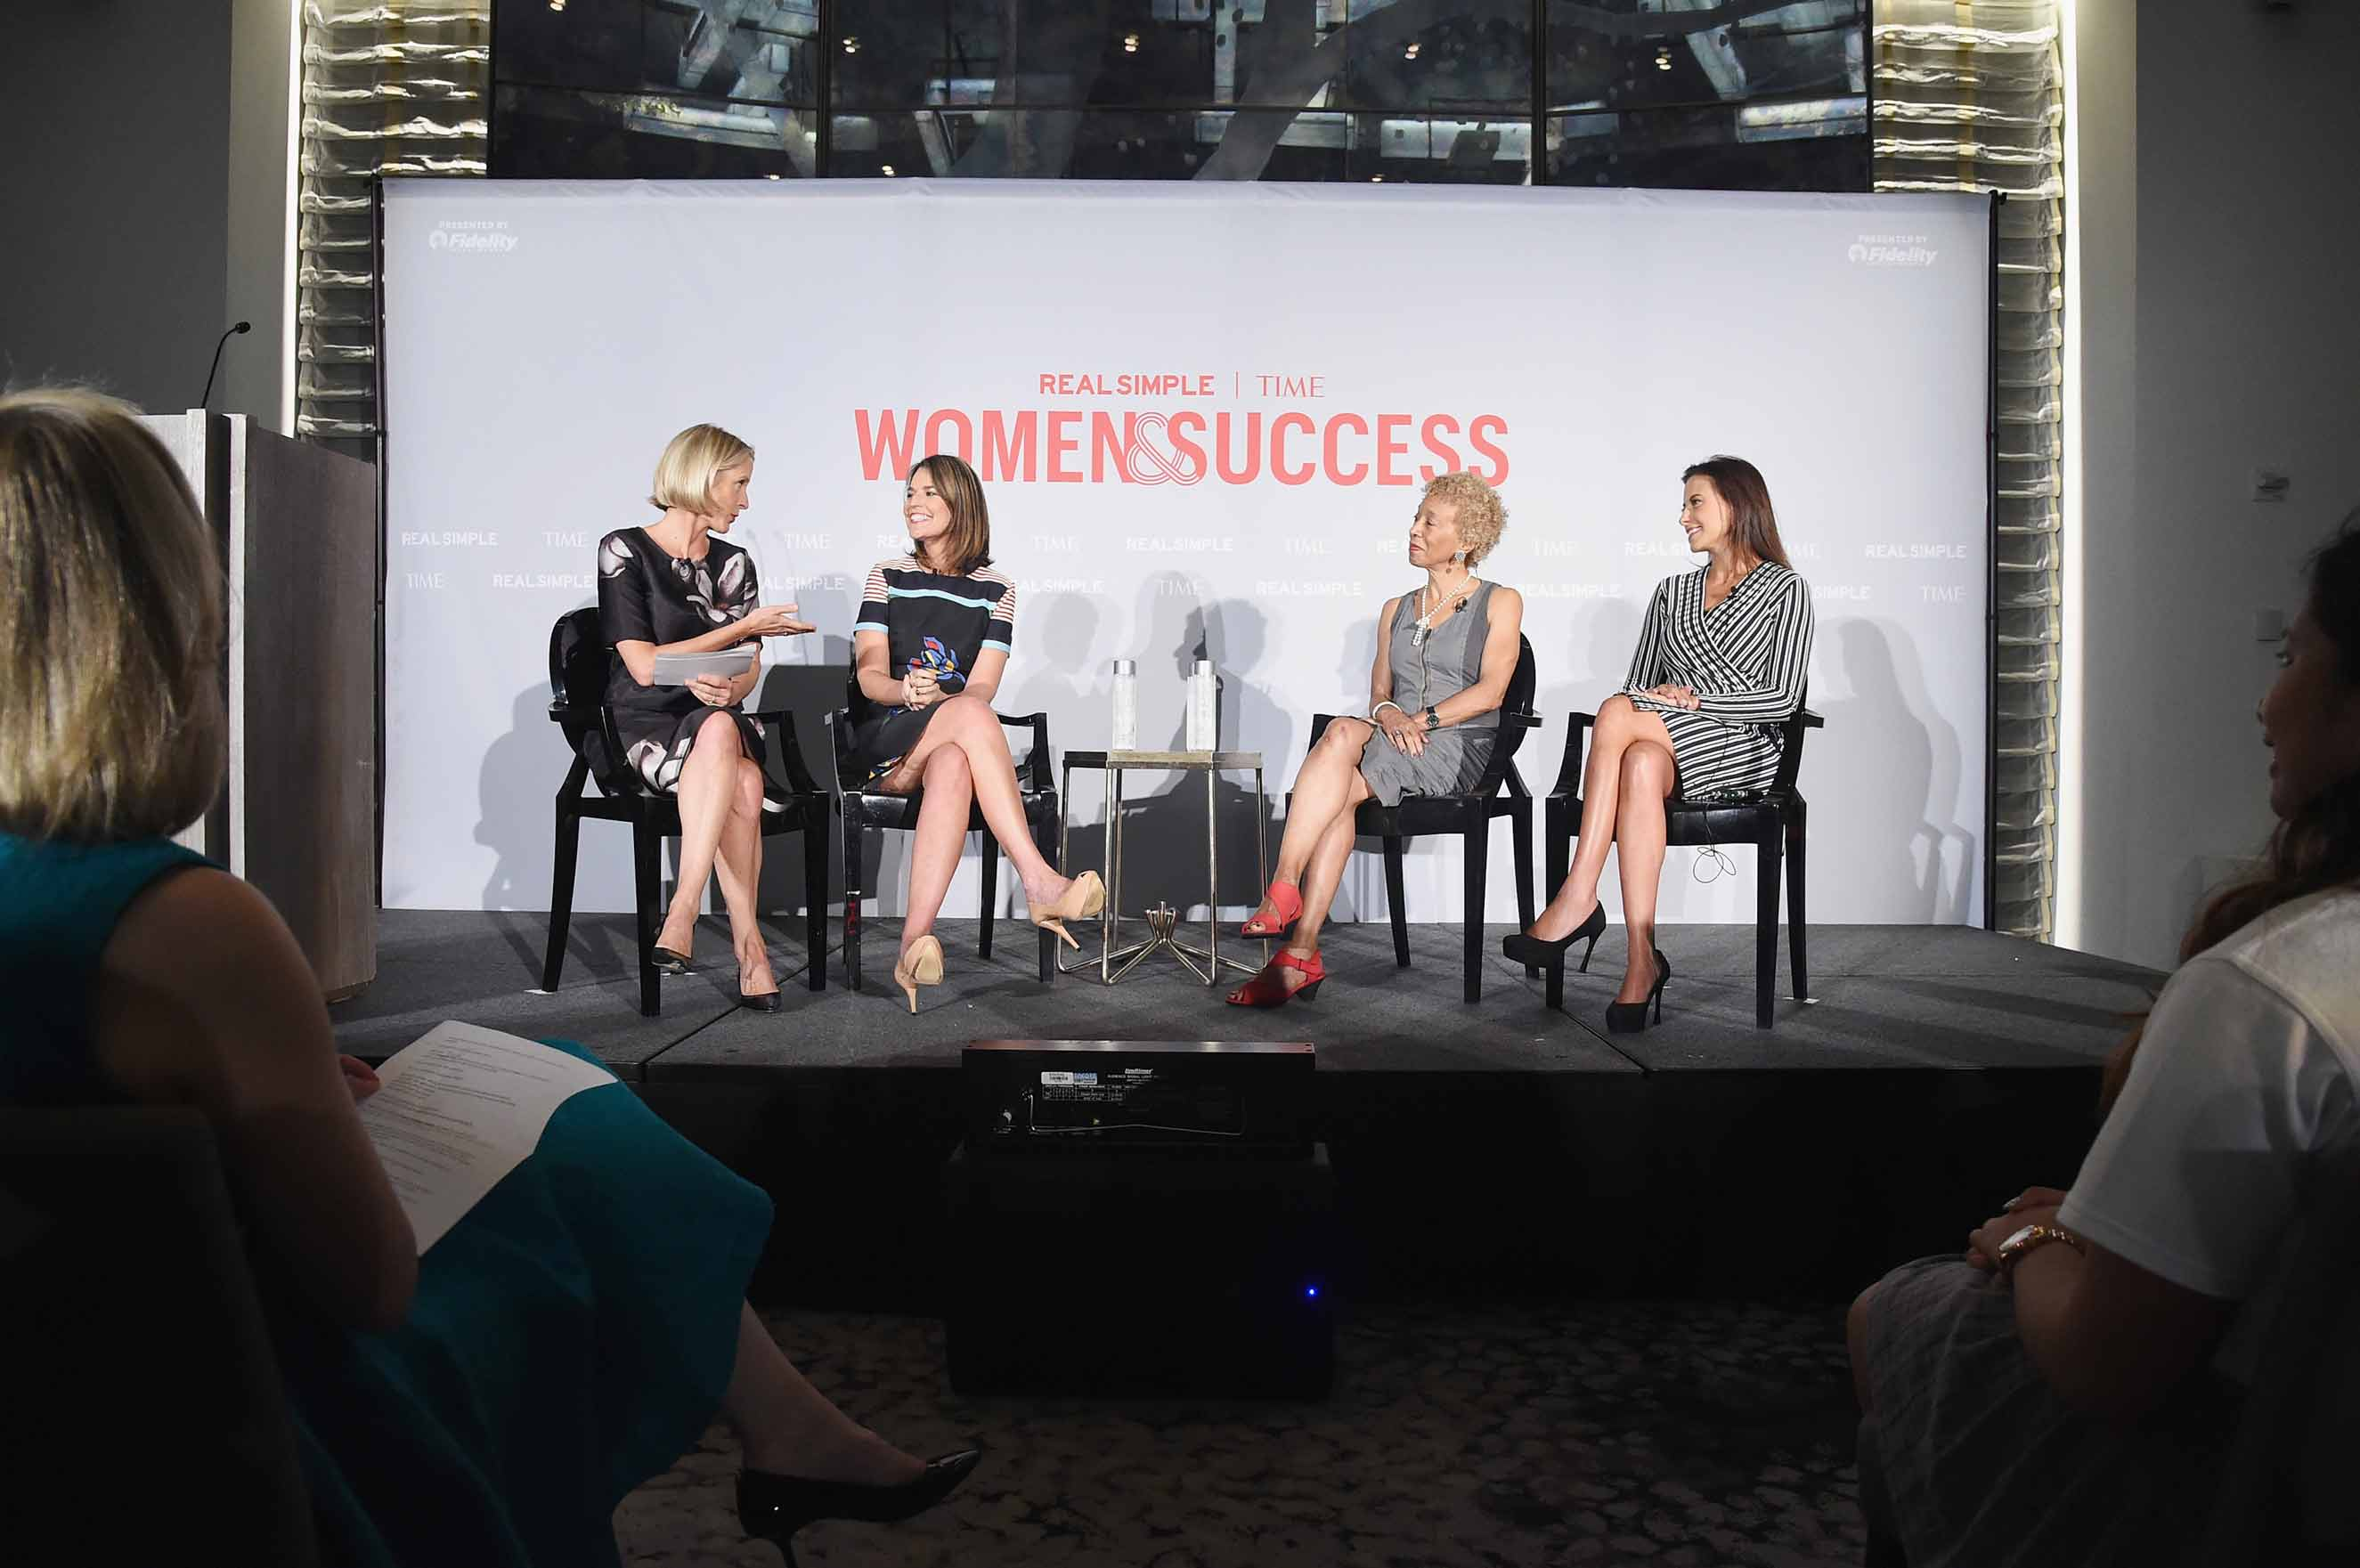 From left: Editor of Real Simple Kristin van Ogtrop, TV correspondent Savannah Guthrie, writer Margo Jefferson, and Dina Powell of Goldman Sachs take part in TIME And Real Simple's Annual Women &; Success Event at Park Hyatt Hotel New York City on Sept. 17, 2015.